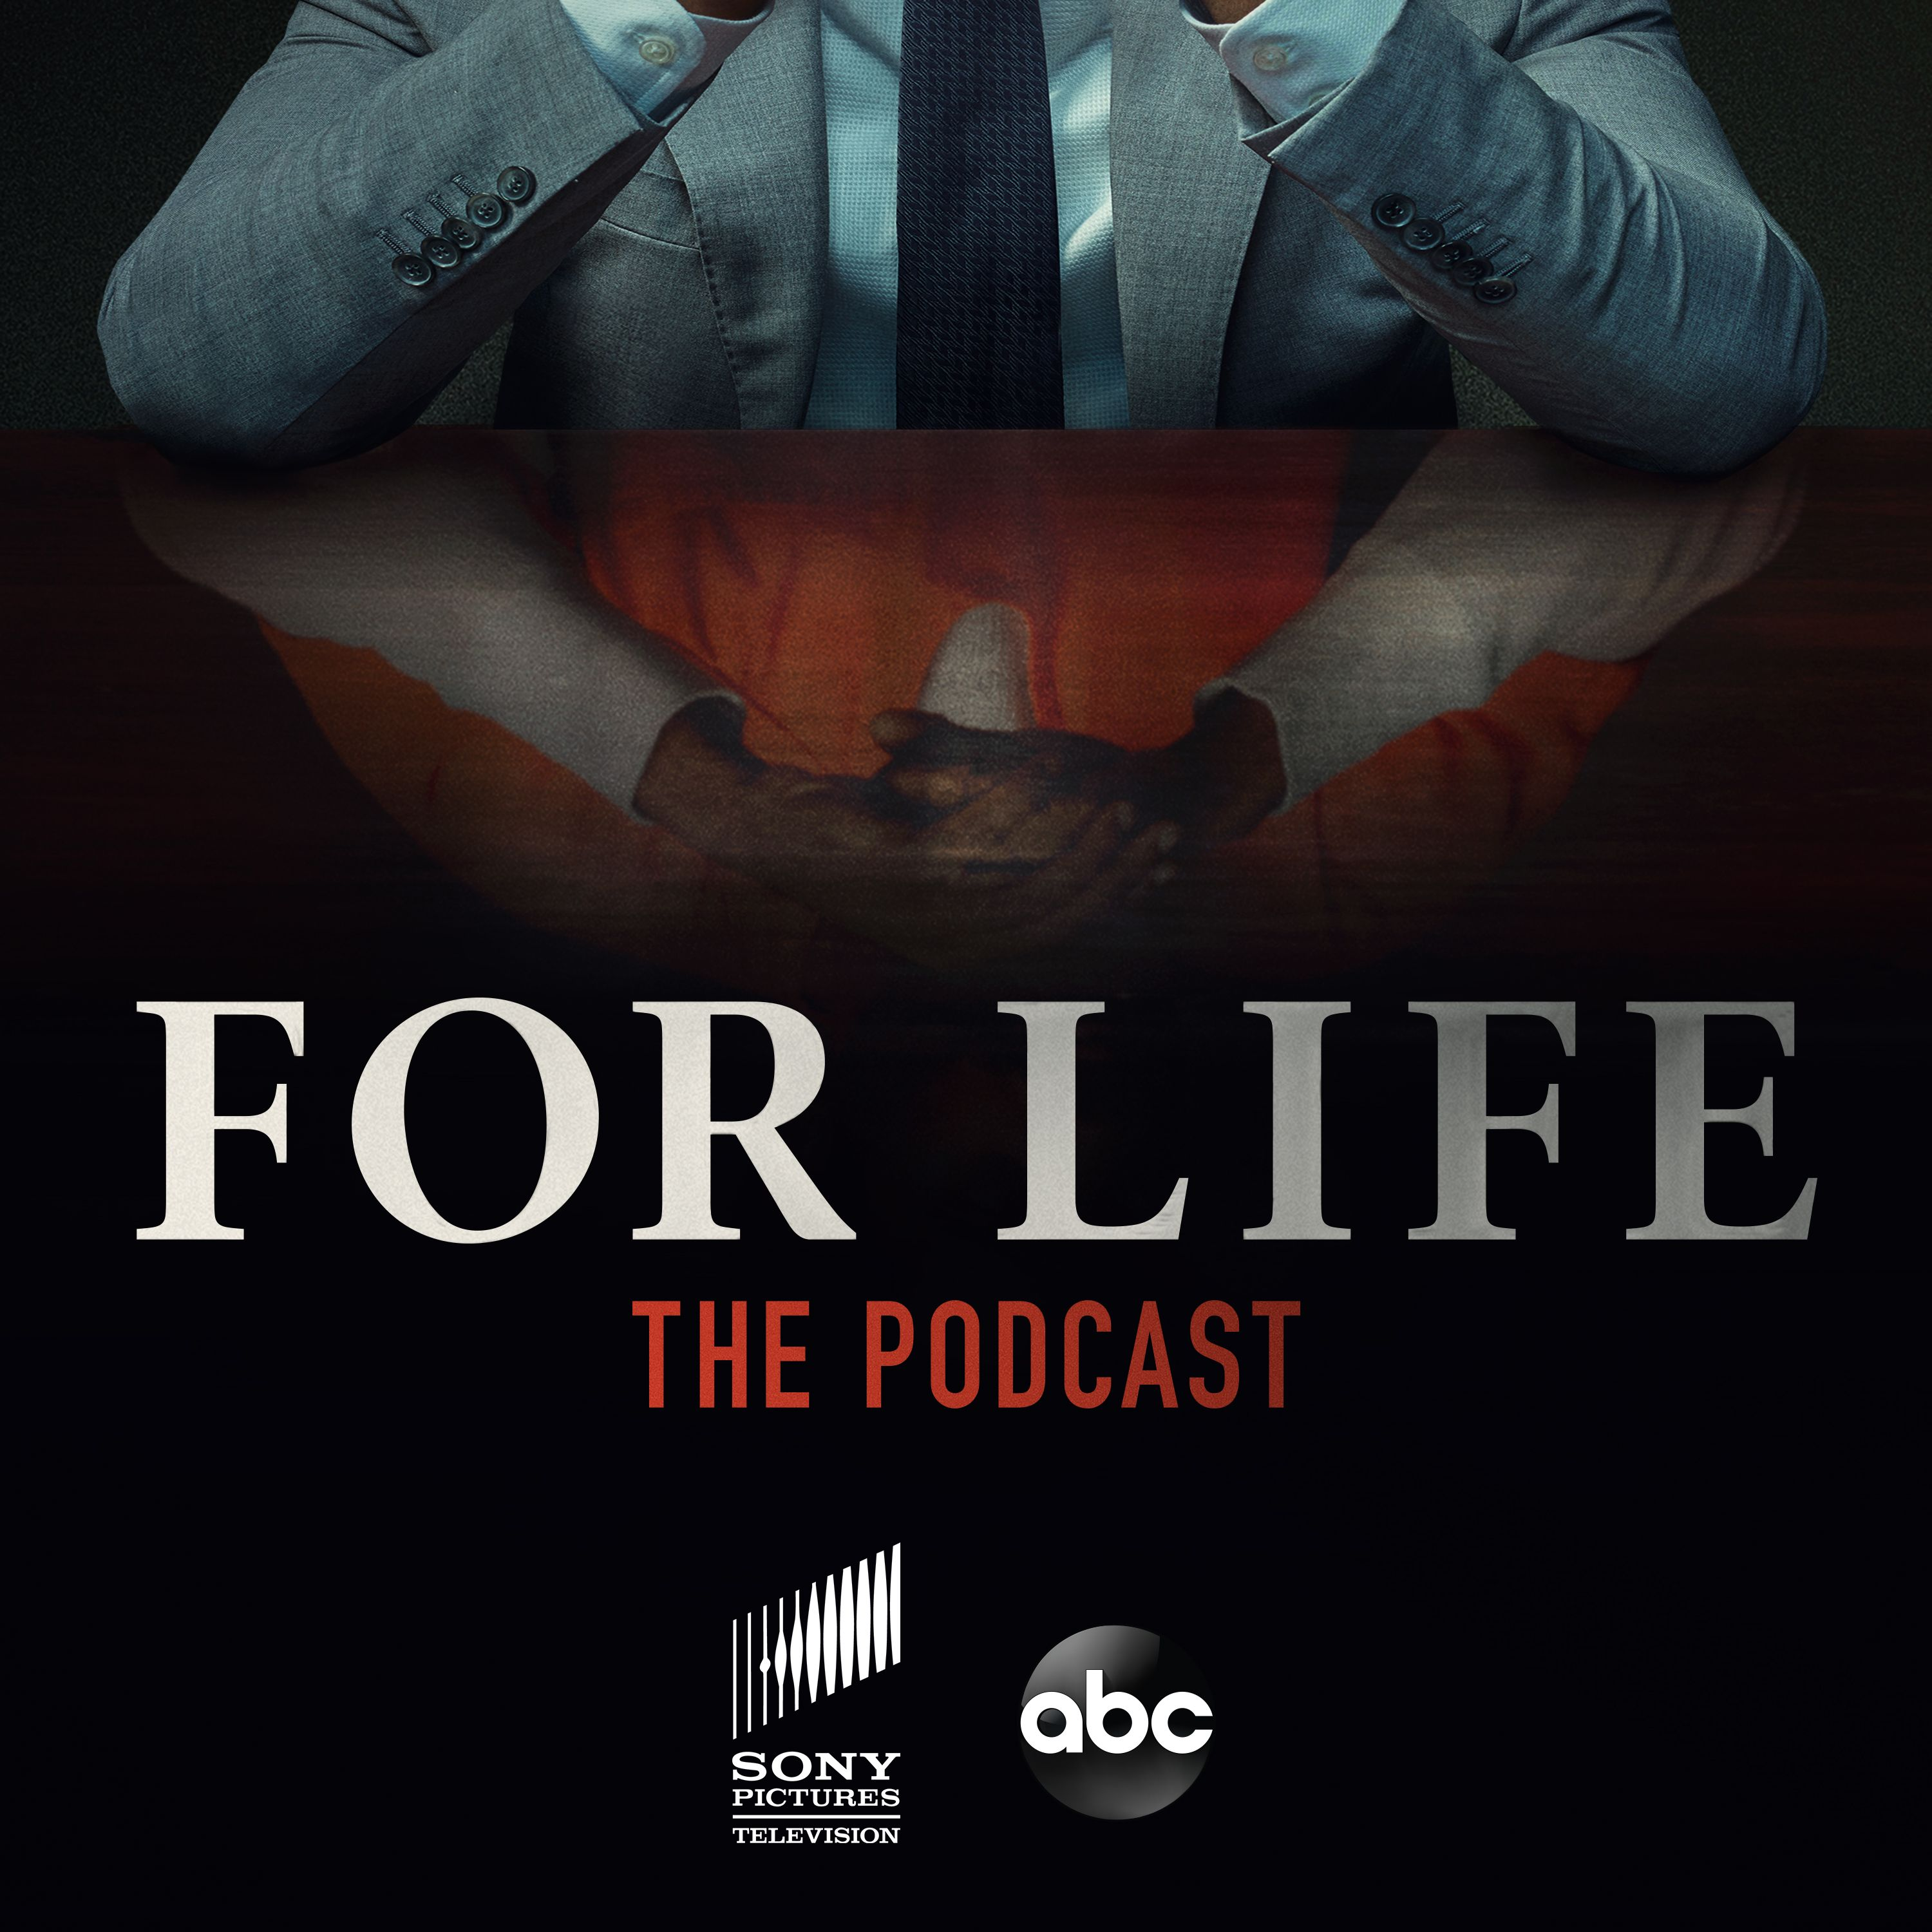 FOR LIFE: The Podcast:Sony Pictures Television & ABC